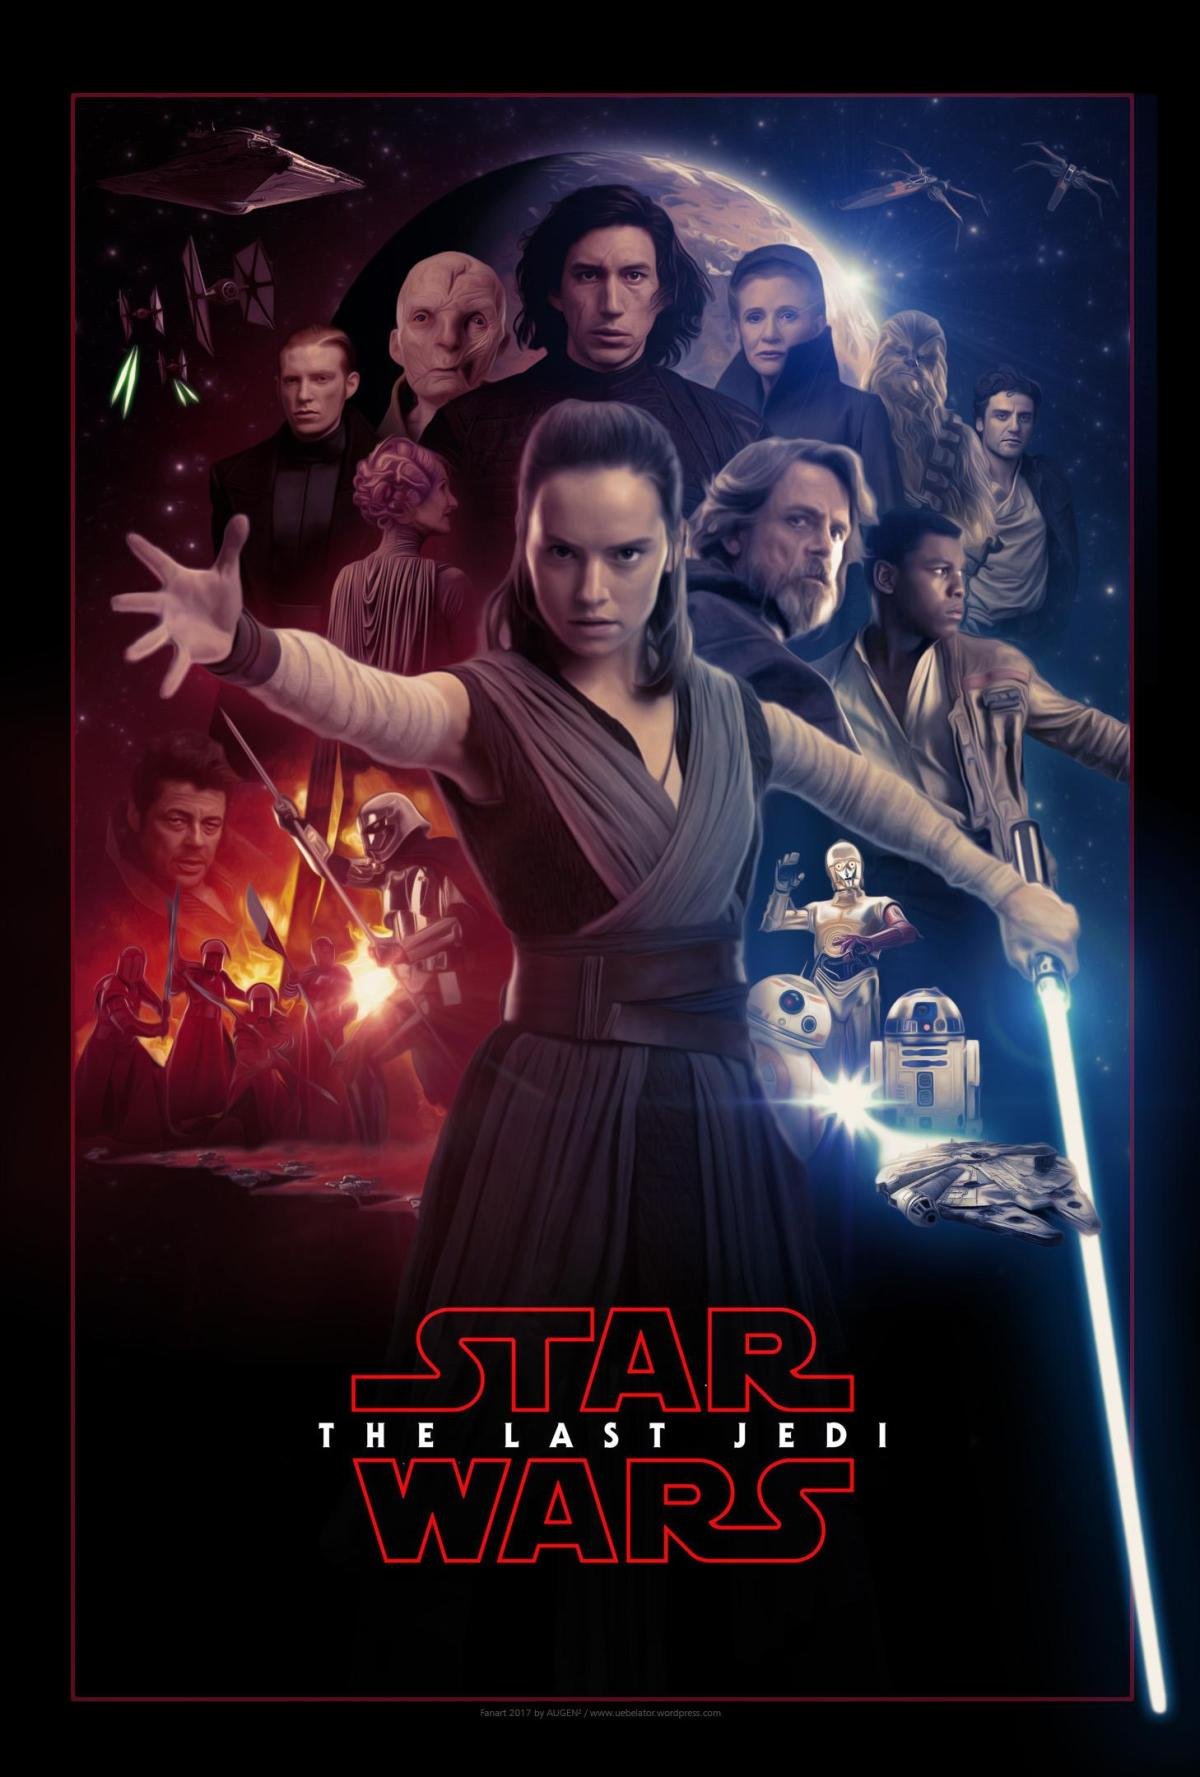 Star Wars: The Last Jedi – Bad but notUnwatchable